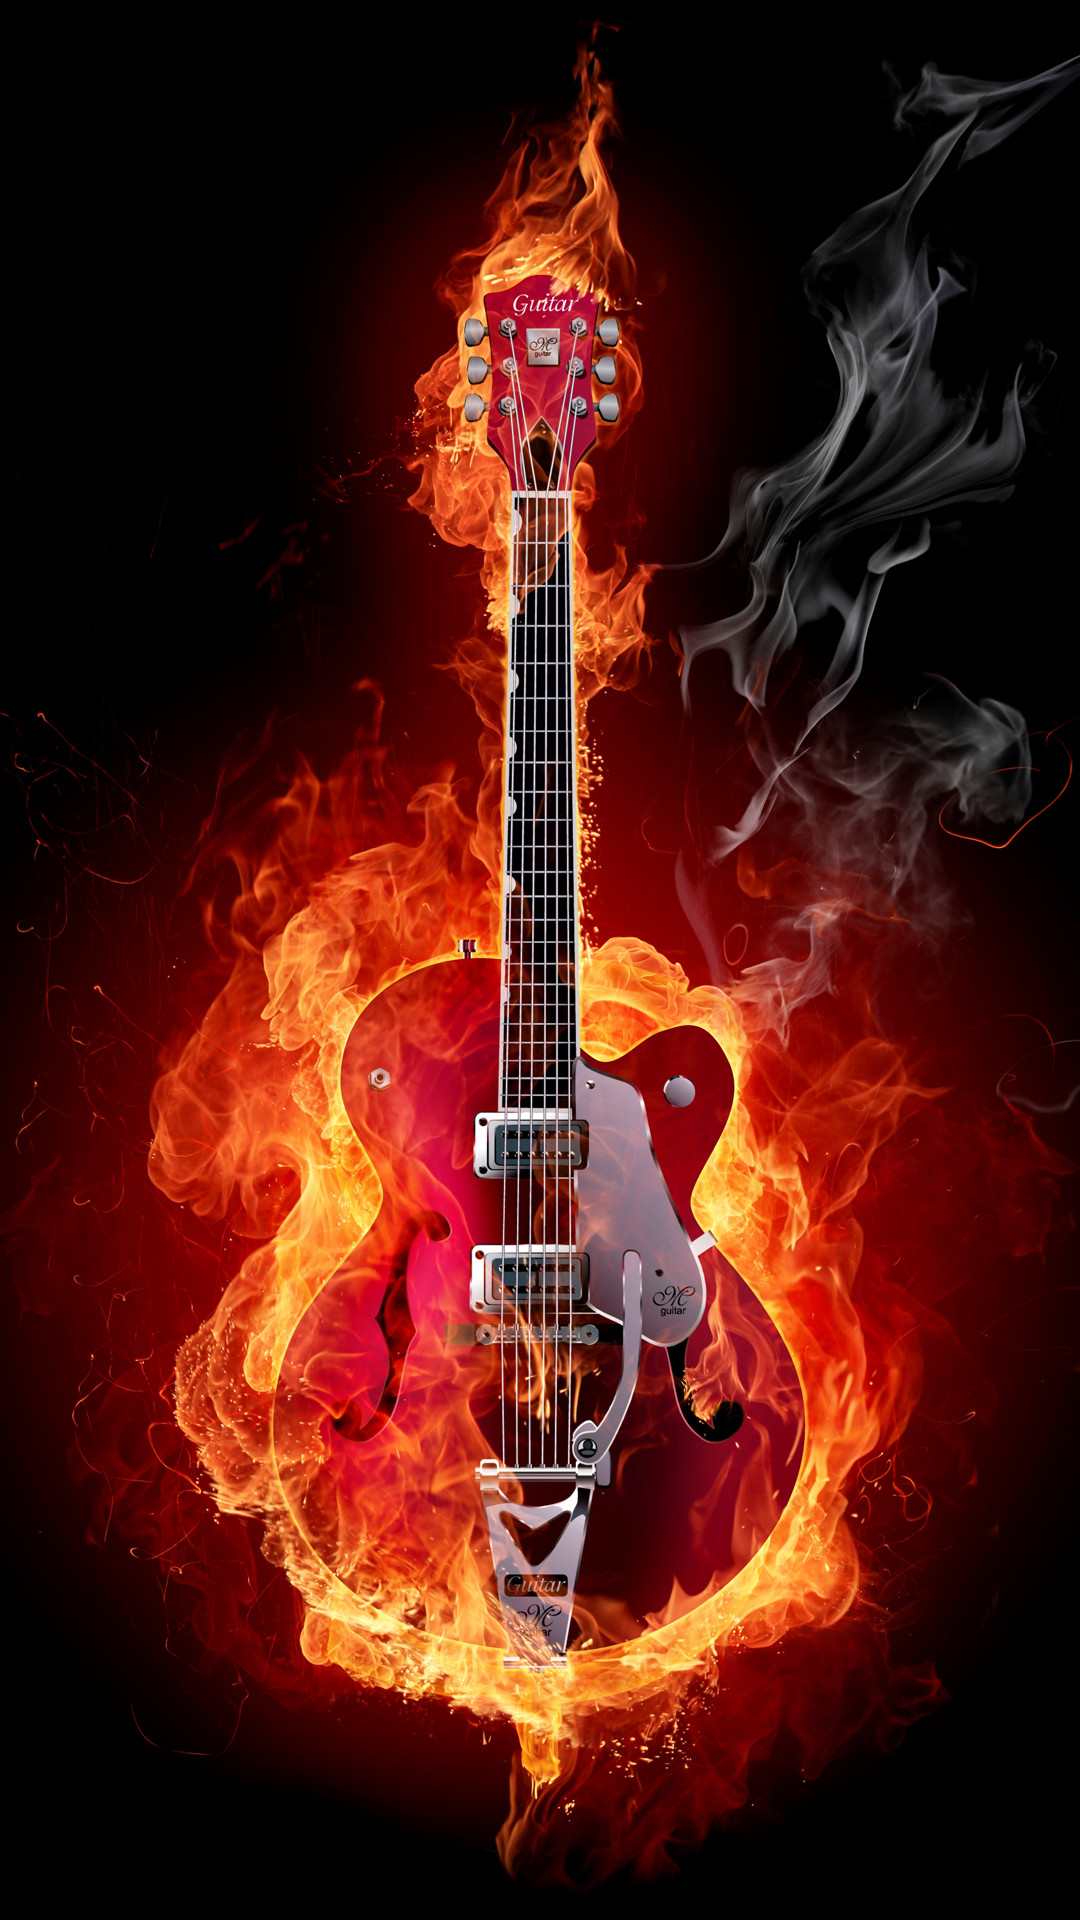 1080x1920 Download Guitar on Fire Download Wallpaper. iPhone 6 (750x1134) · iPhone 6+  () ...